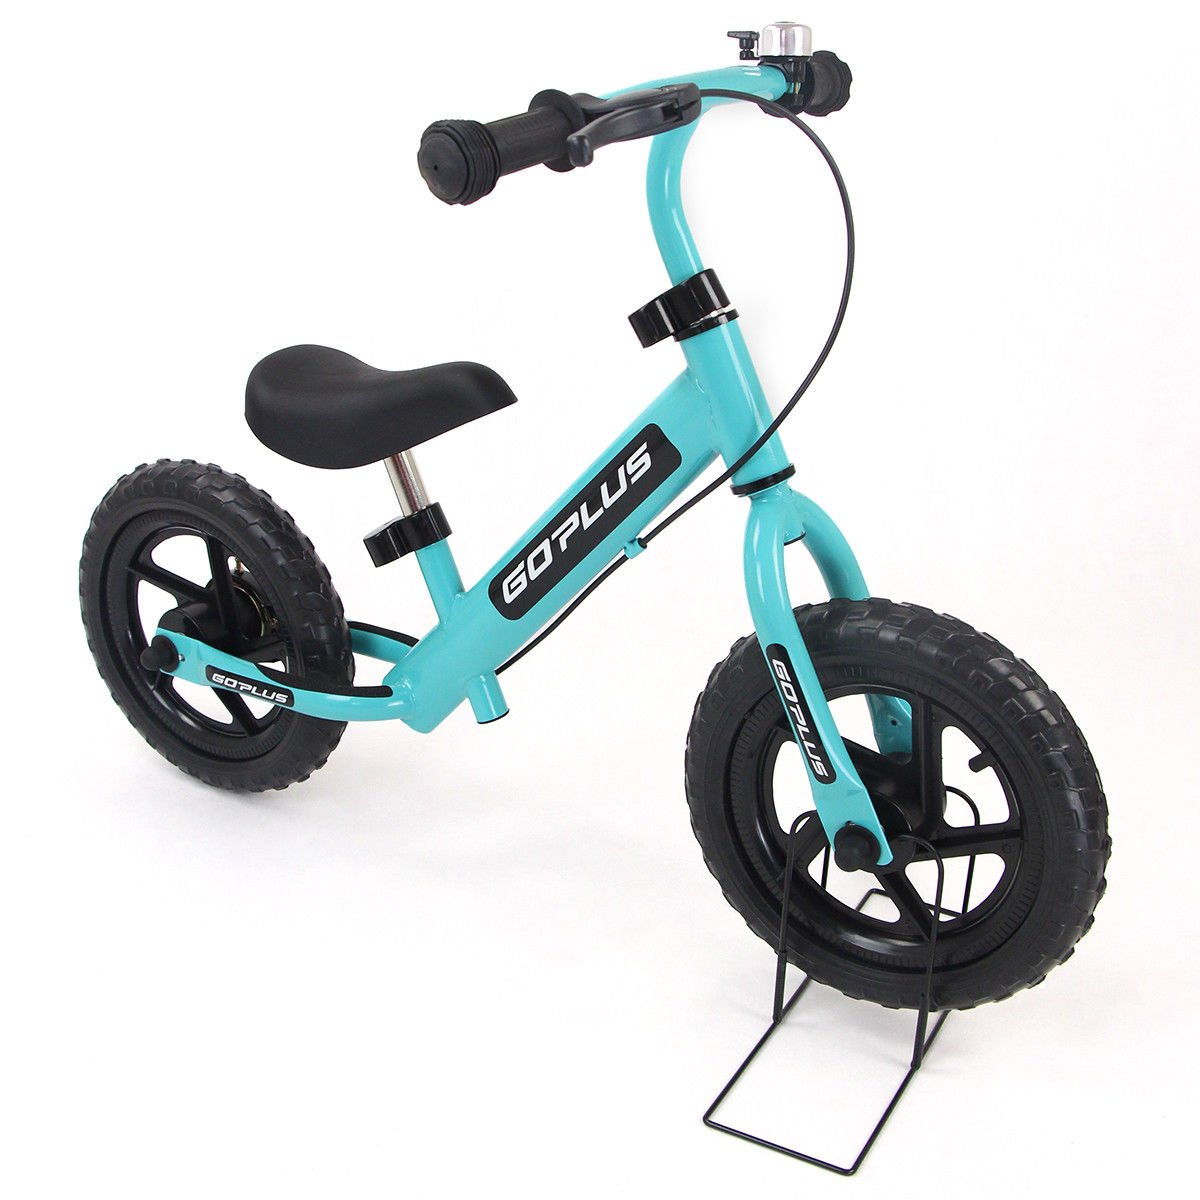 Goplus 12'' Kids Balance Bike No-Pedal Learn To Ride Pre Bike Push Walking Bicycle Adjustable Height with Bell Ring and Stand (Navy)